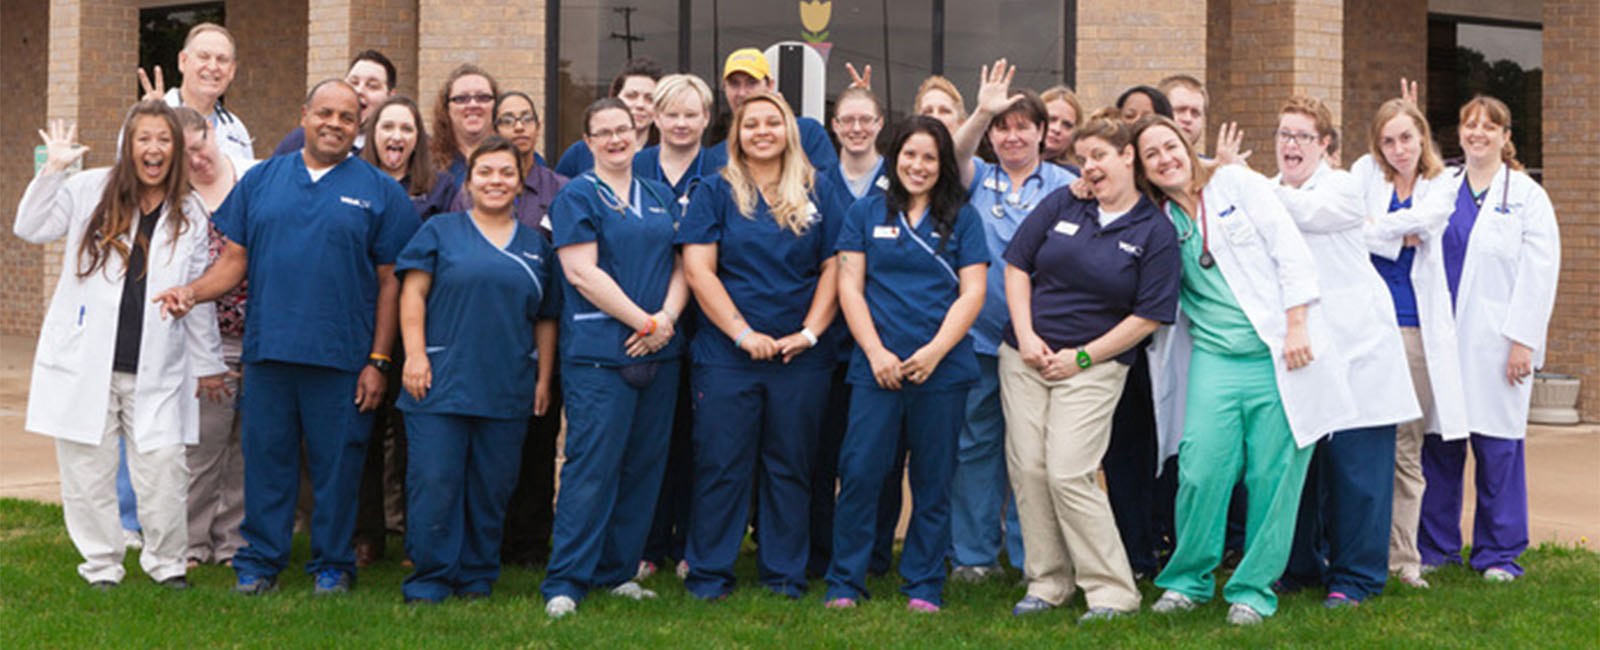 Homepage Team Picture of VCA Metroplex Animal Hospital & Pet Lodge